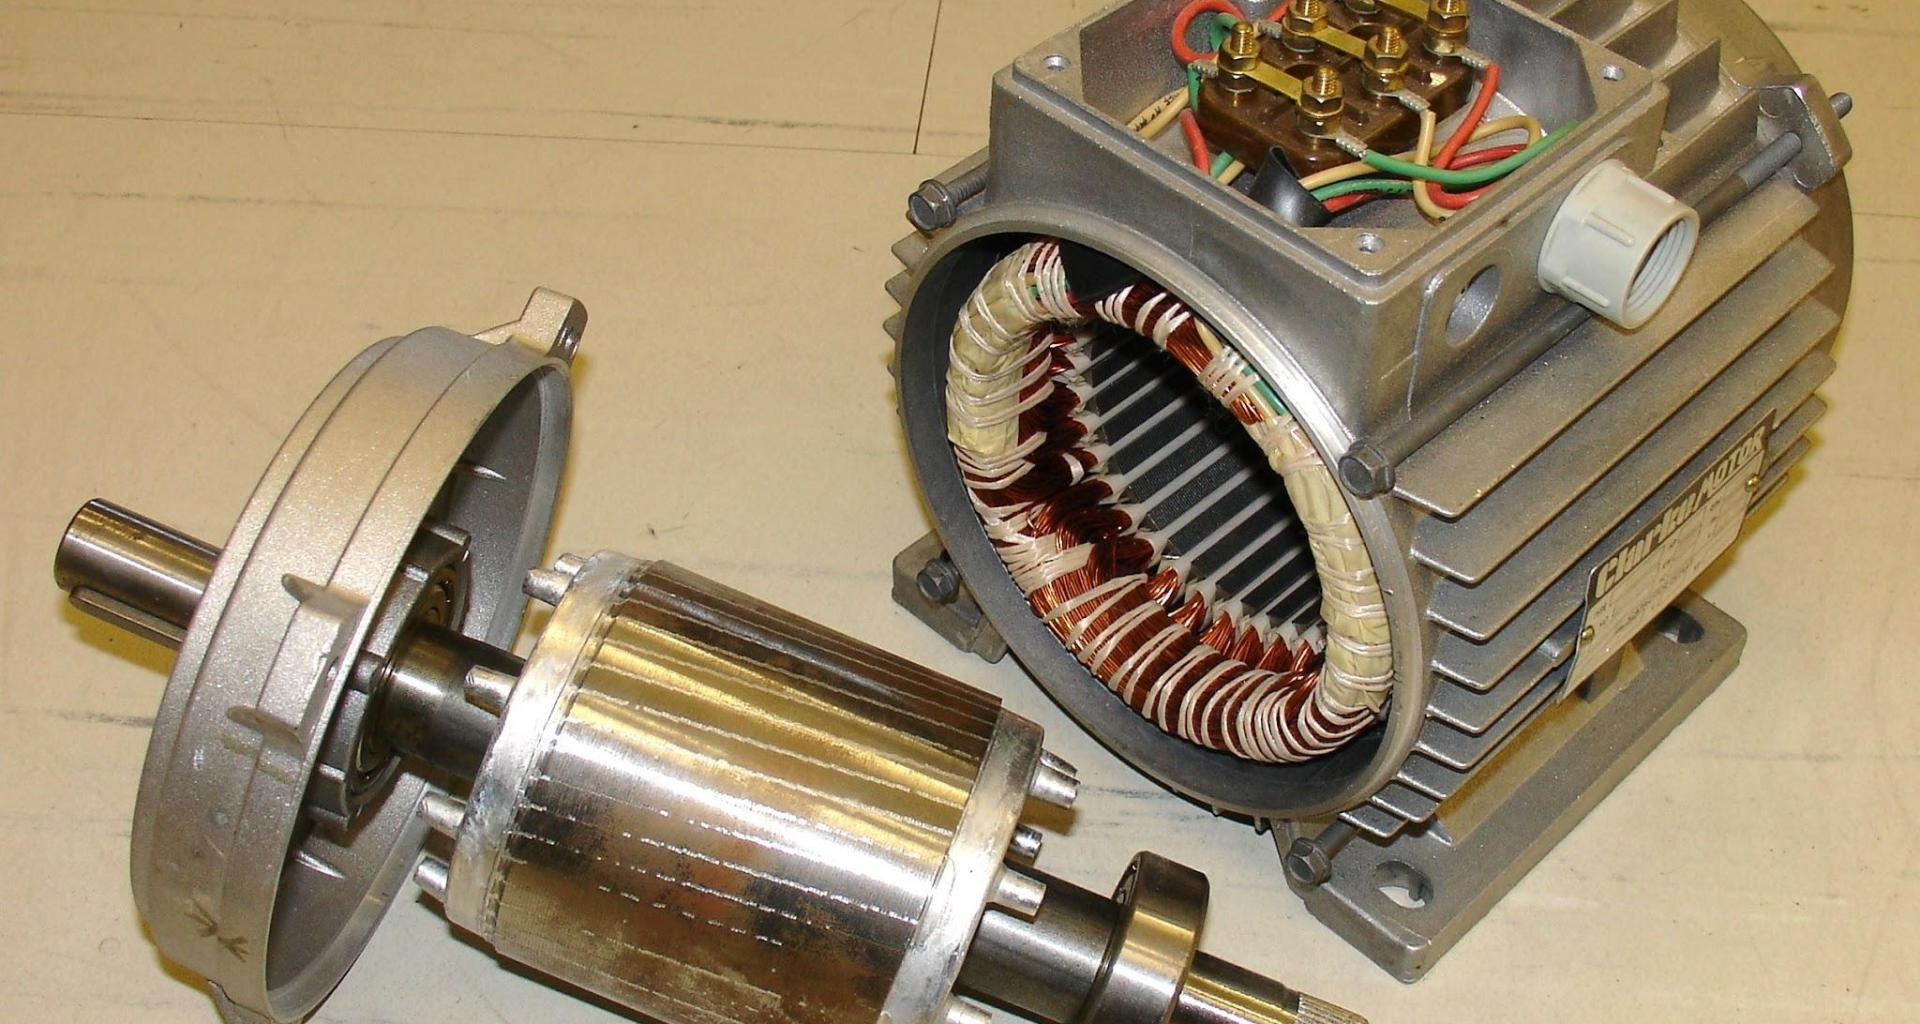 5 Types of Medical Equipment that Use Miniature Motors 1